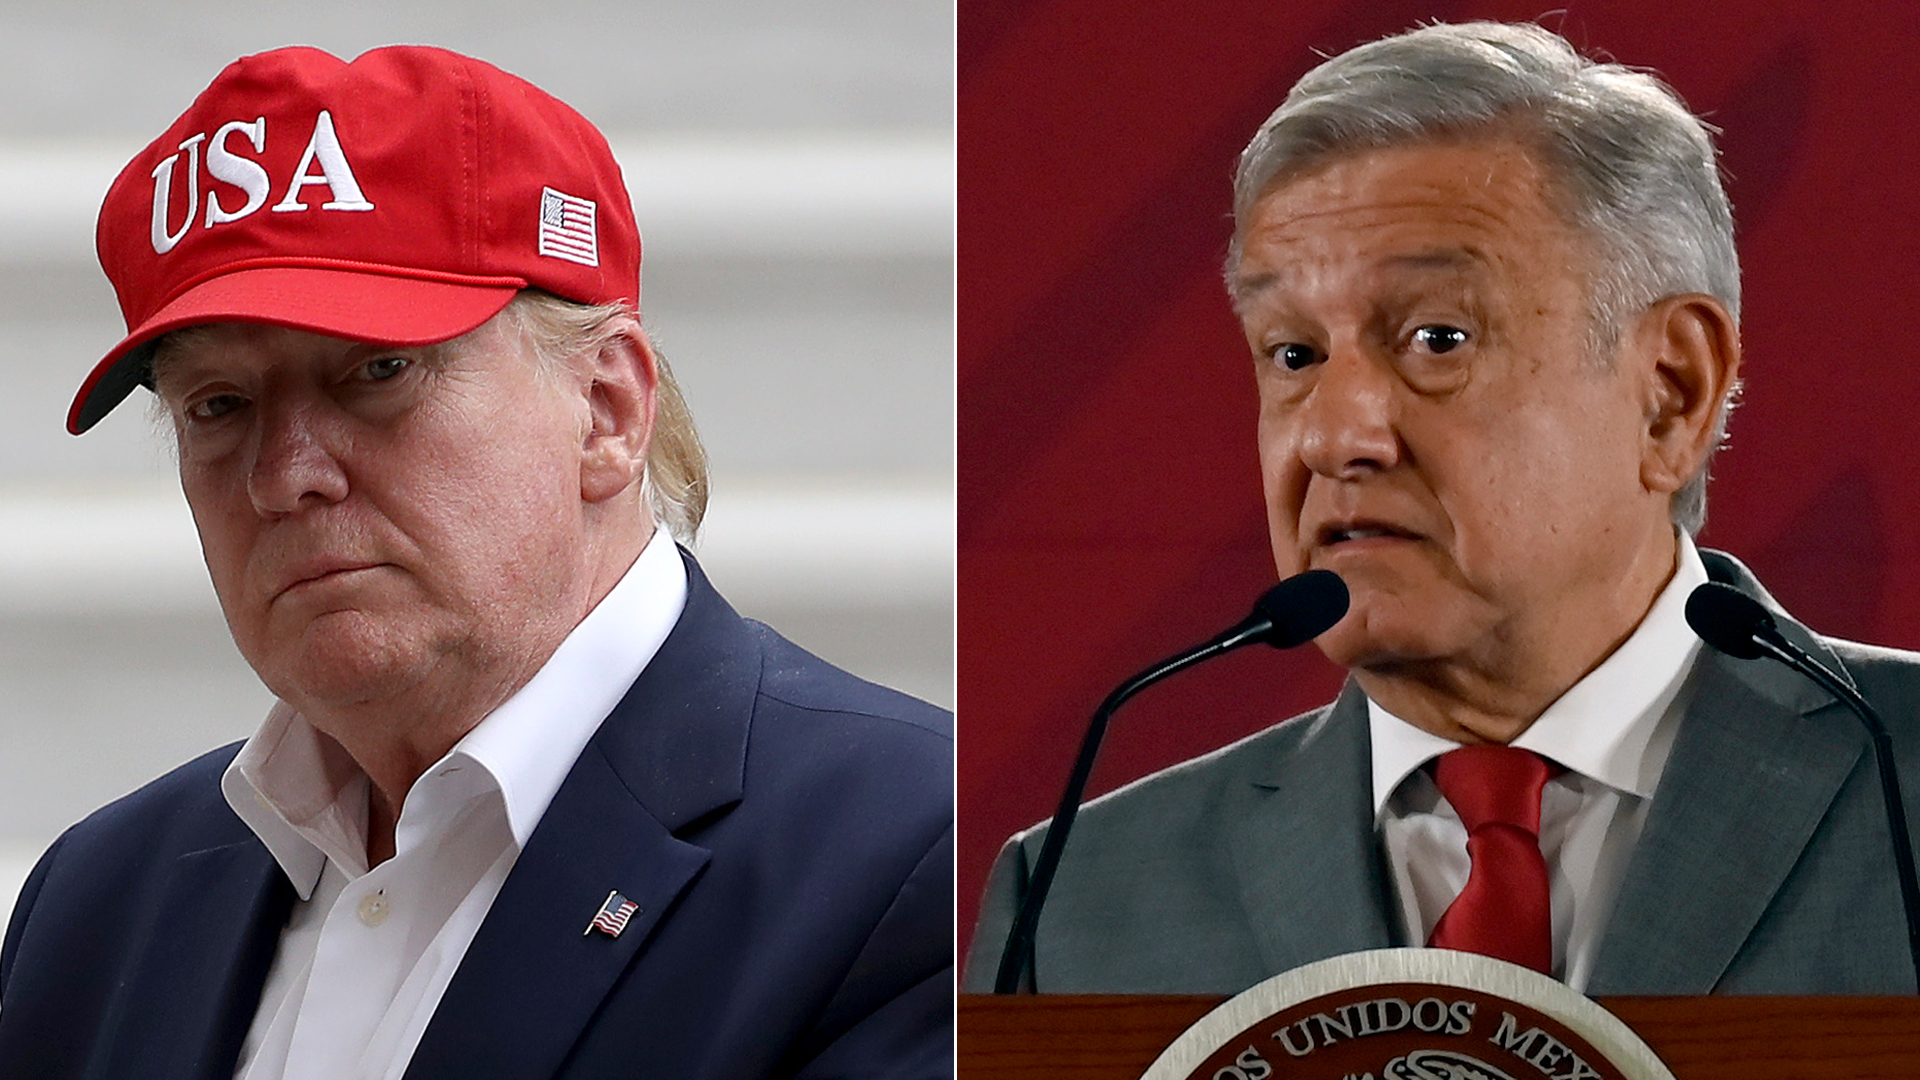 U.S. President Donald Trump, left, appears at the White House on June 7, 2019. Mexican President Andres Manuel Lopez Obrador speaks at the National Palace in Mexico City, on May 31, 2019. (Credit: Win McNamee/ALFREDO ESTRELLA/AFP/Getty Images)